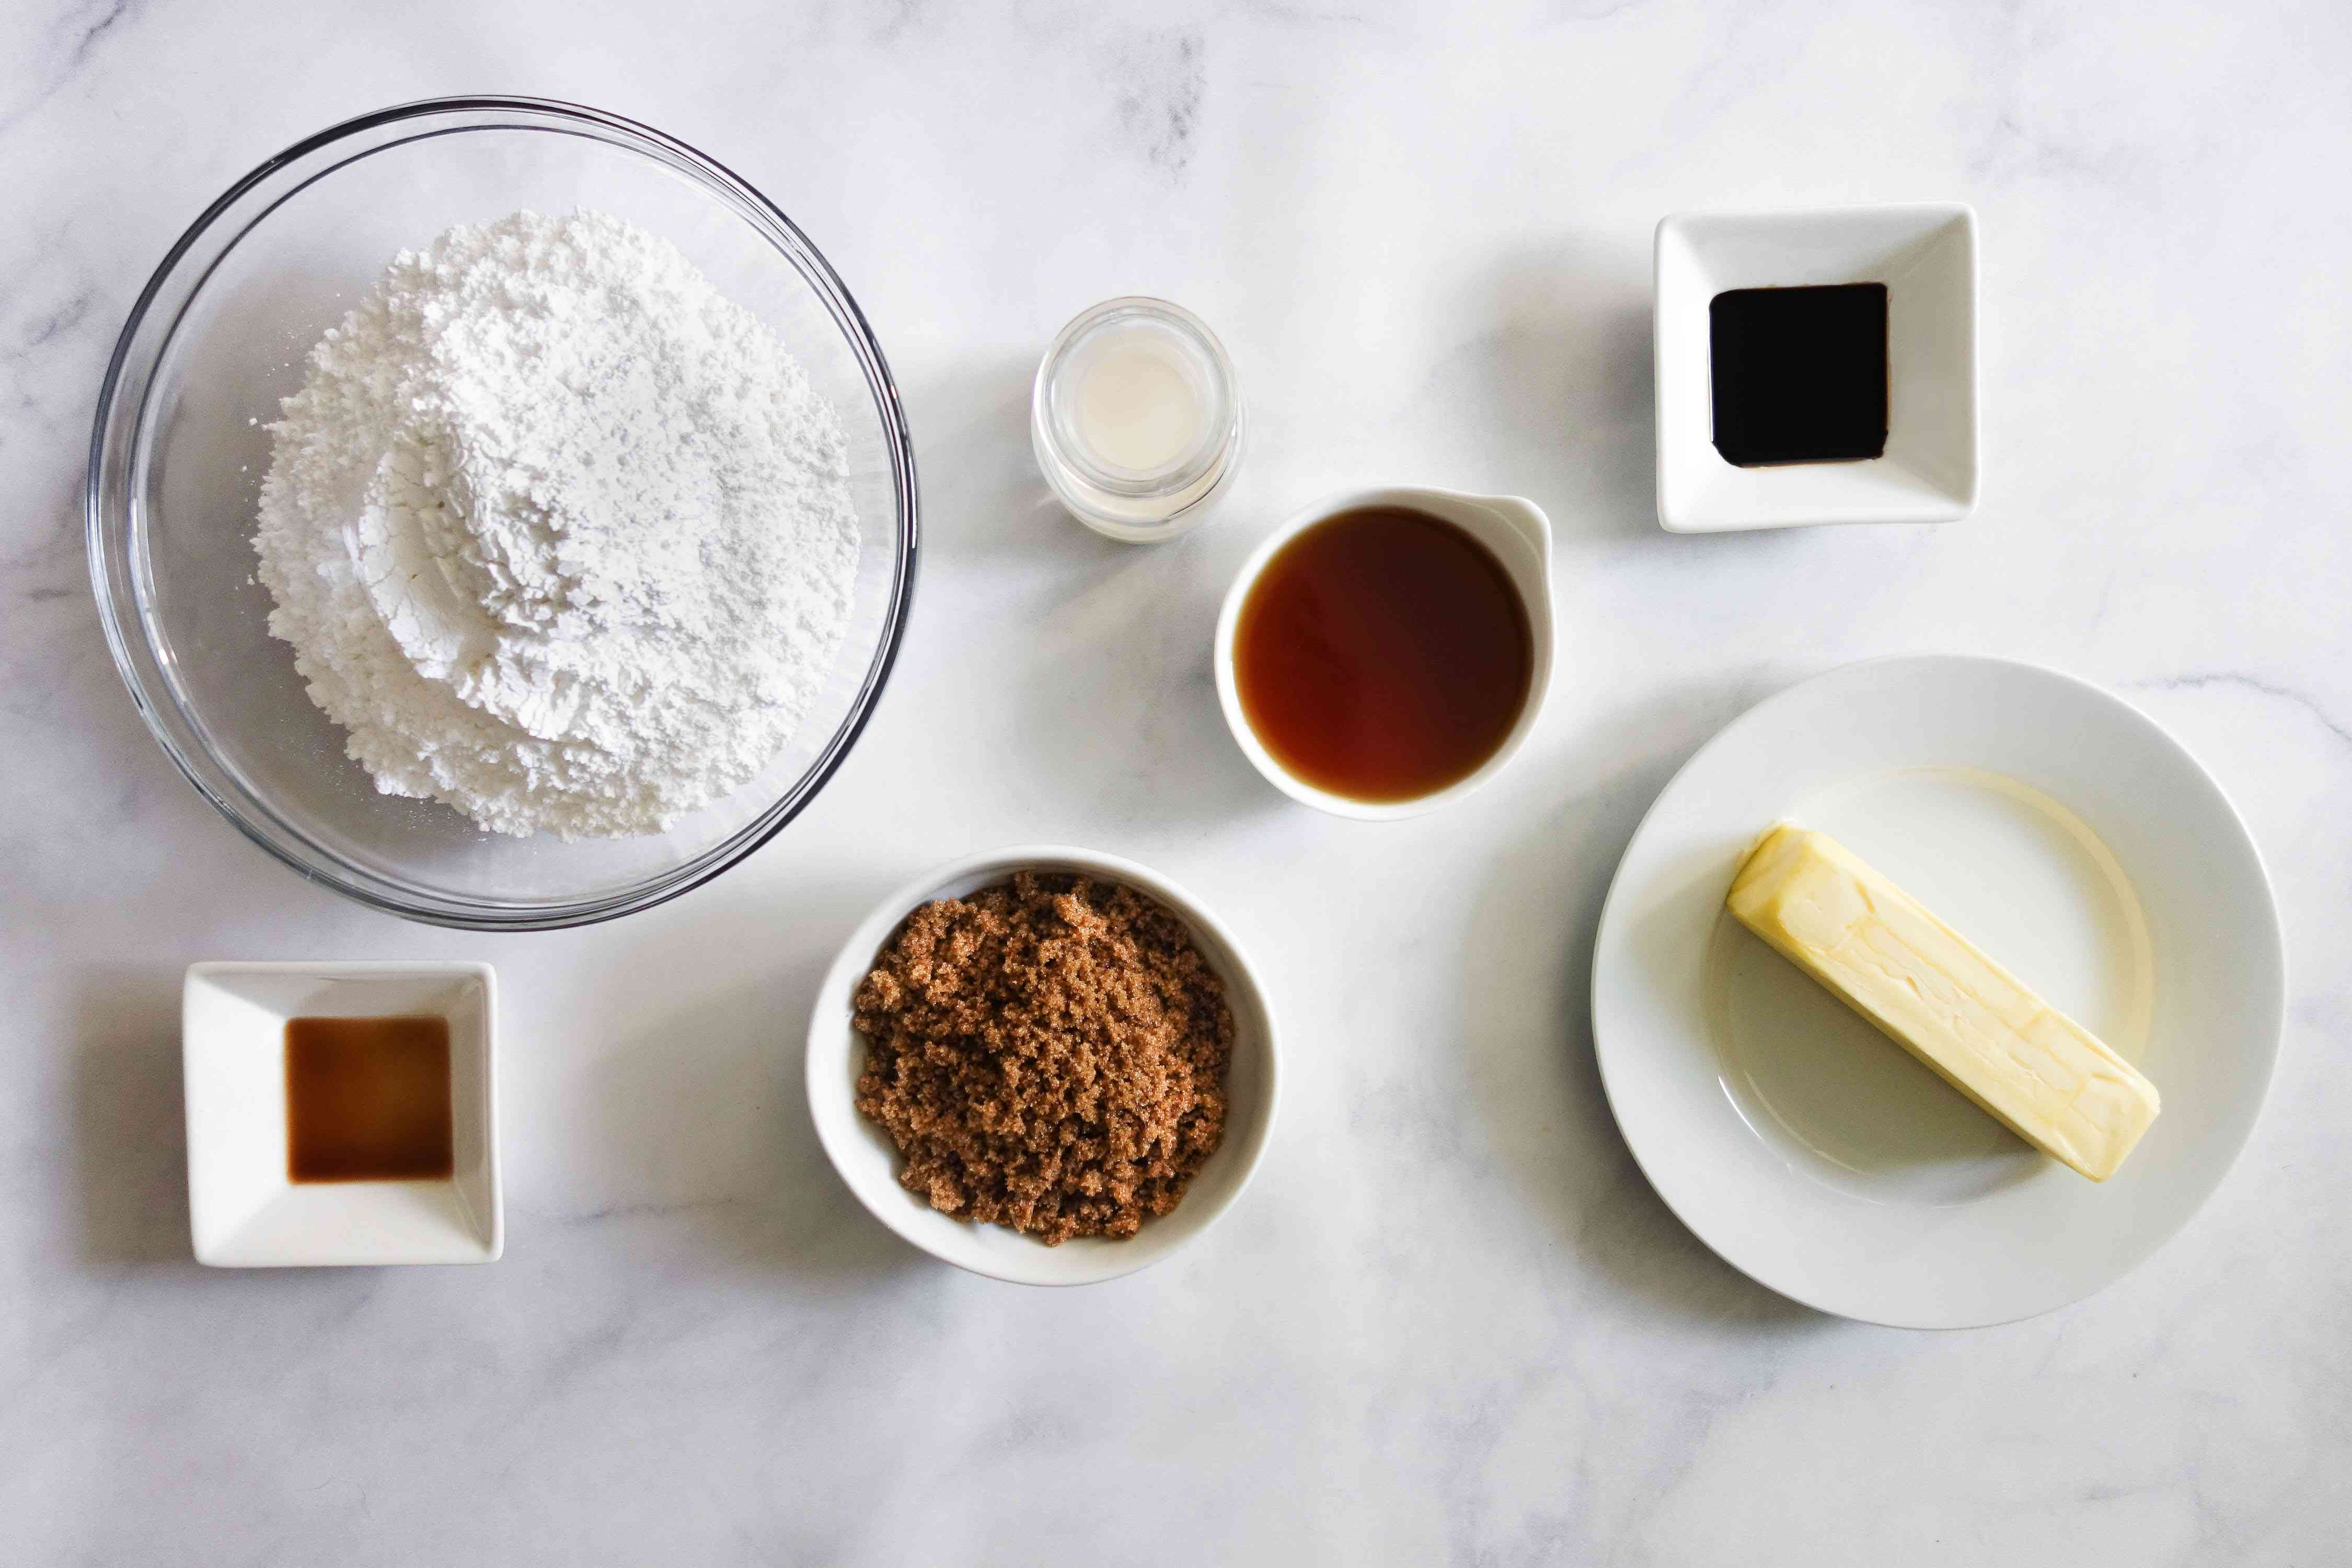 Fluffy Maple Frosting ingredients